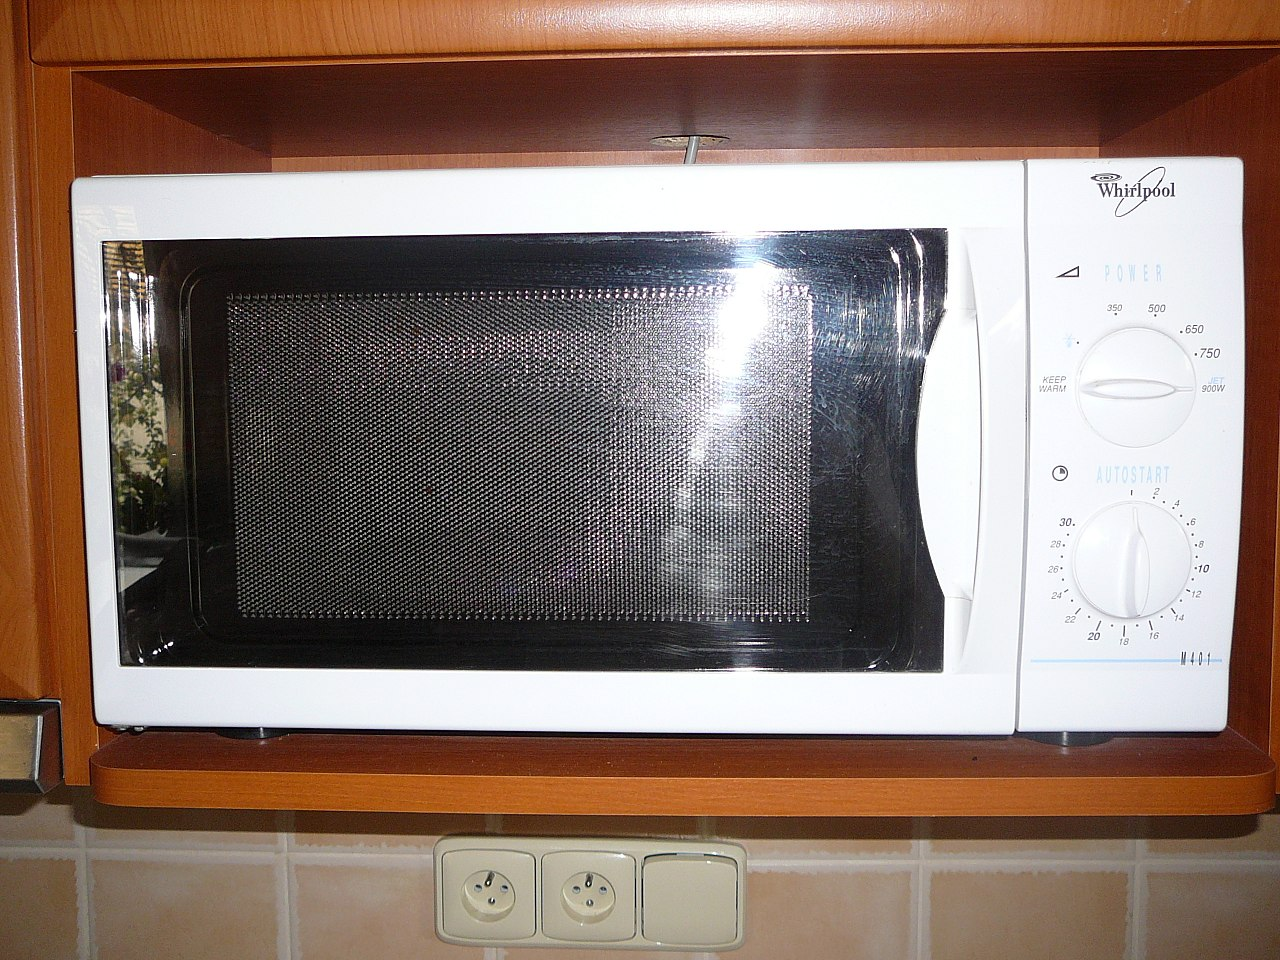 file whirlpool microwave oven m401